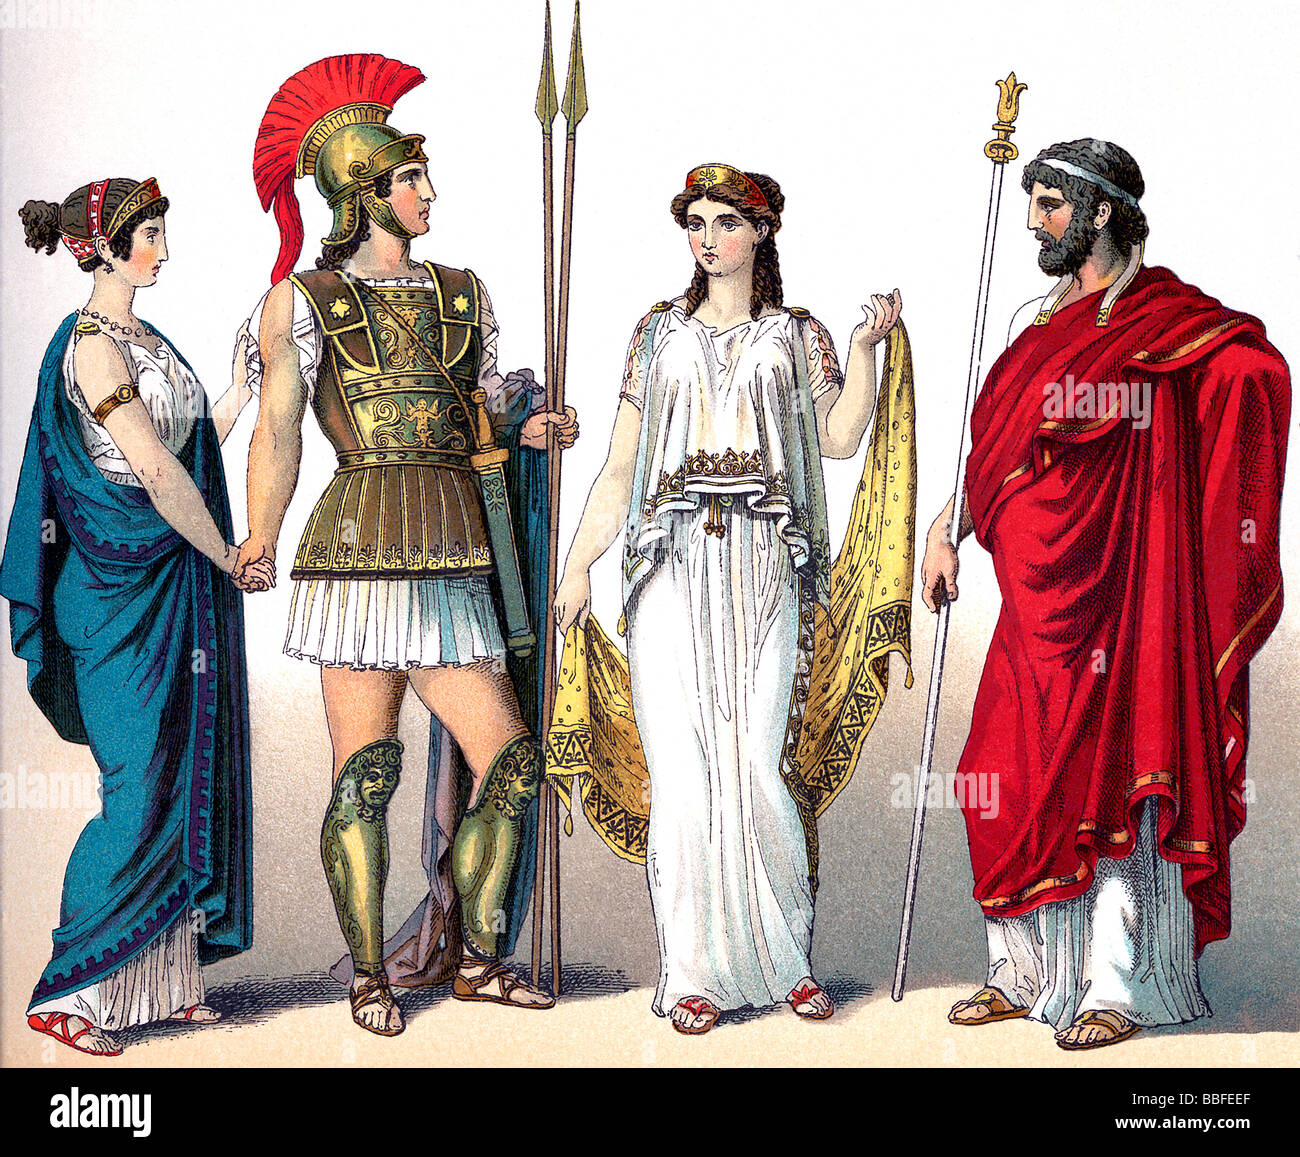 Greek Women, Warrior, and King - Stock Image